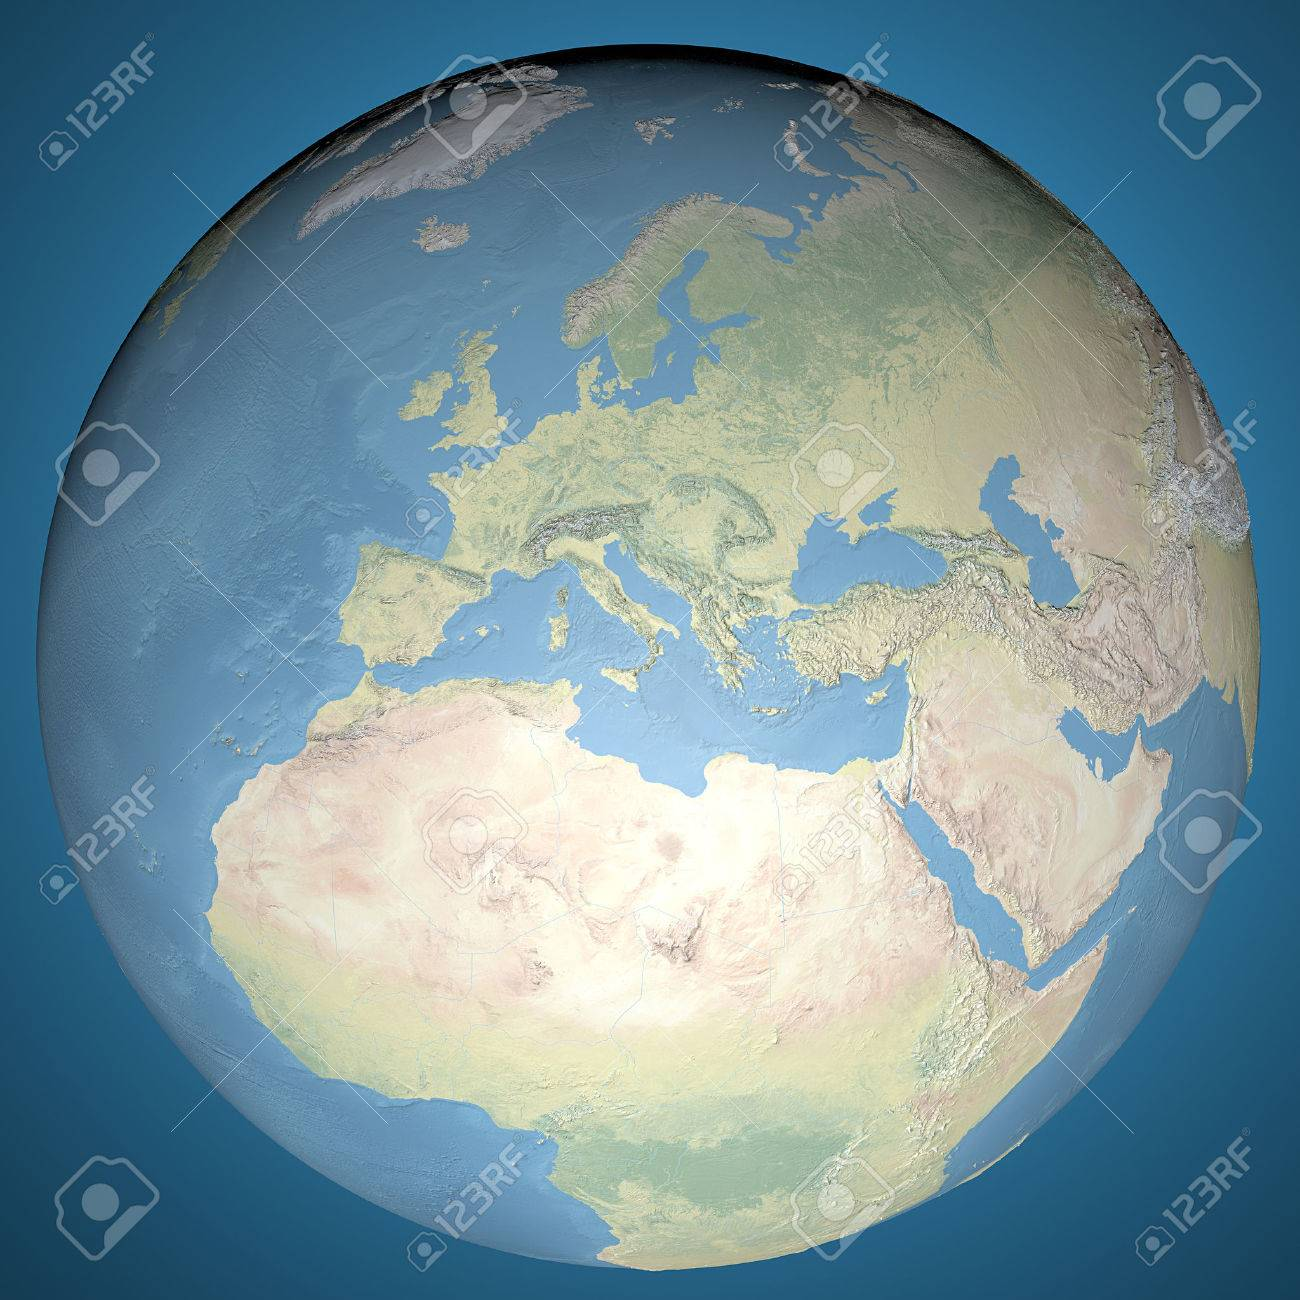 World Map Physical Map Europe Middle East And North Africa - Physical map of north africa